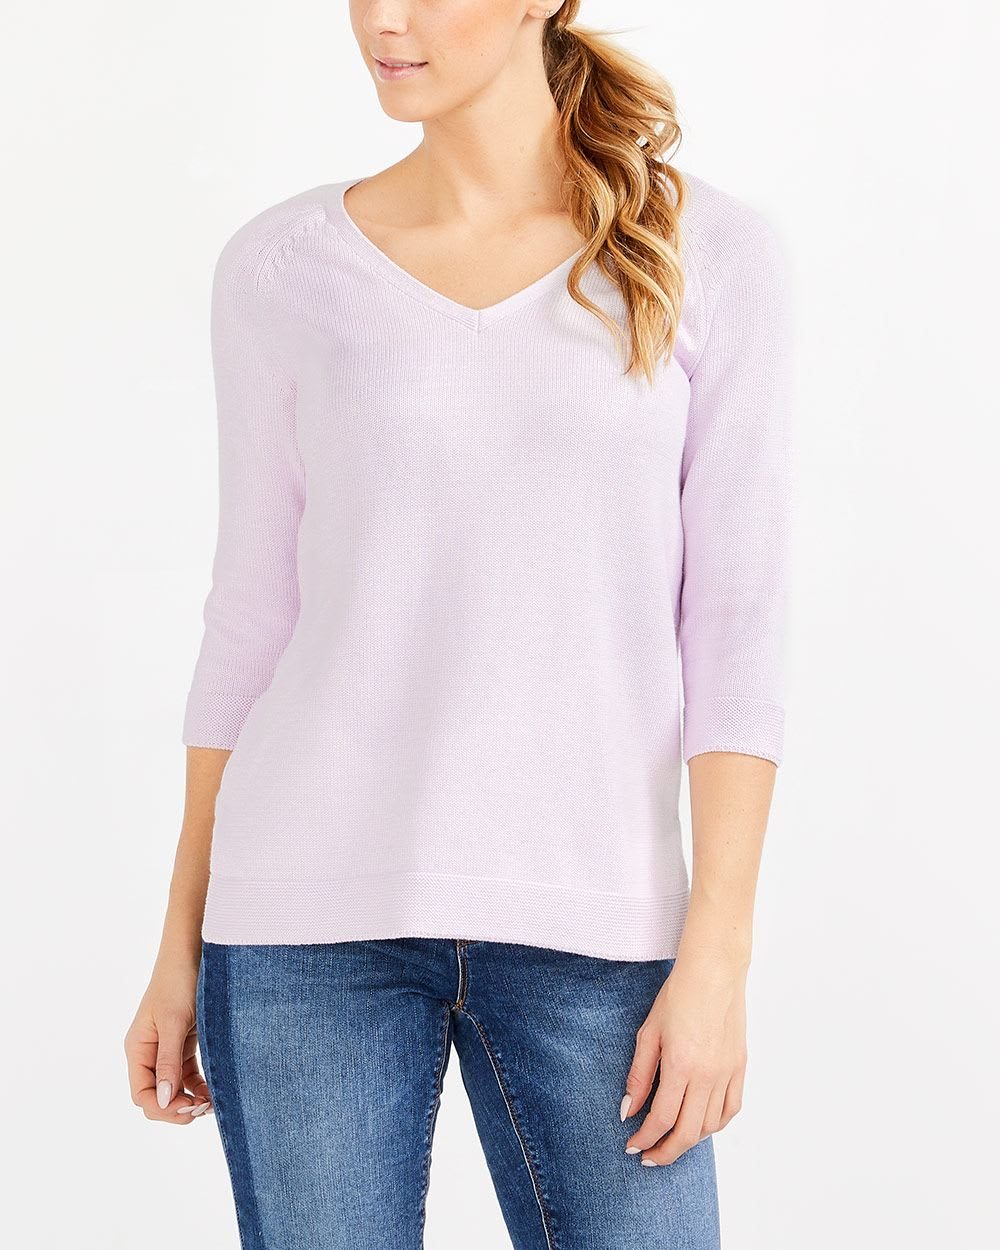 ¾ Raglan Sleeve Sweater